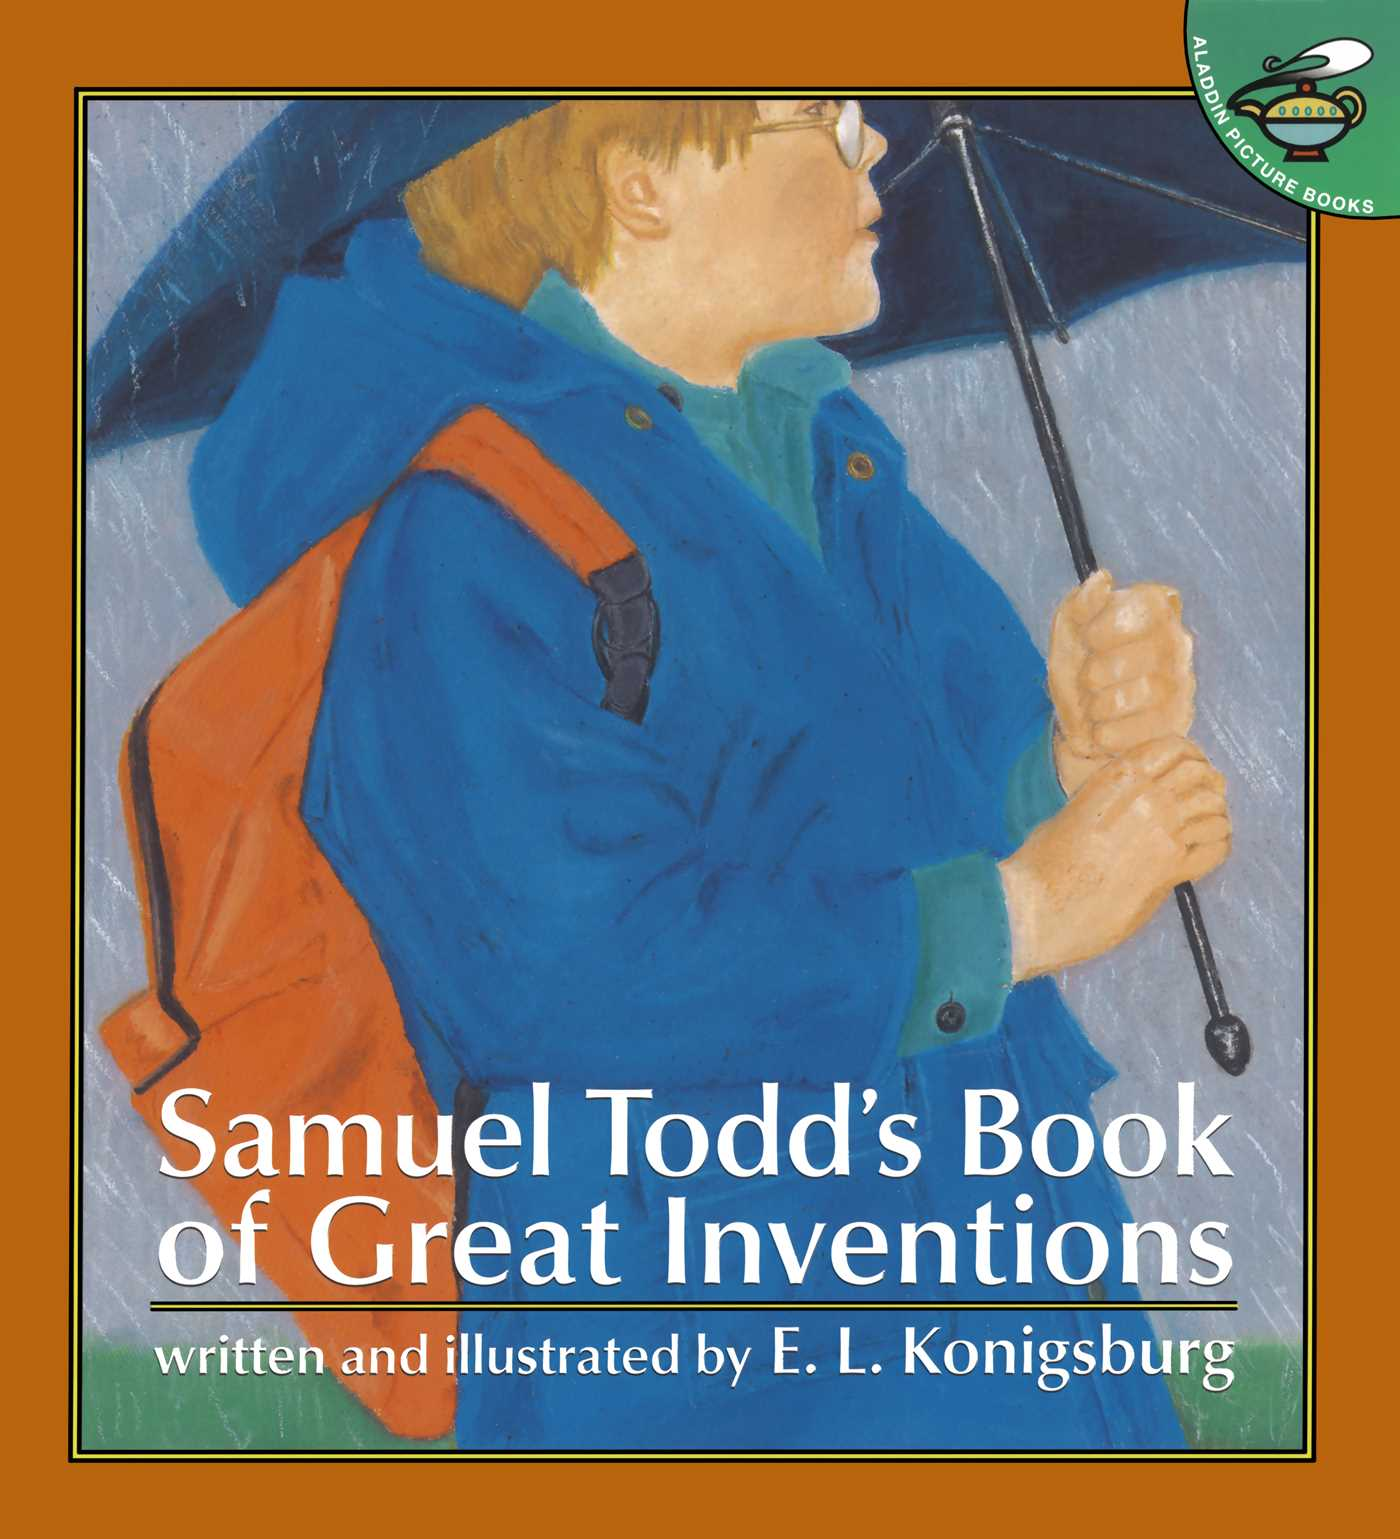 Samuel todds book of great inventions 9780689832024 hr